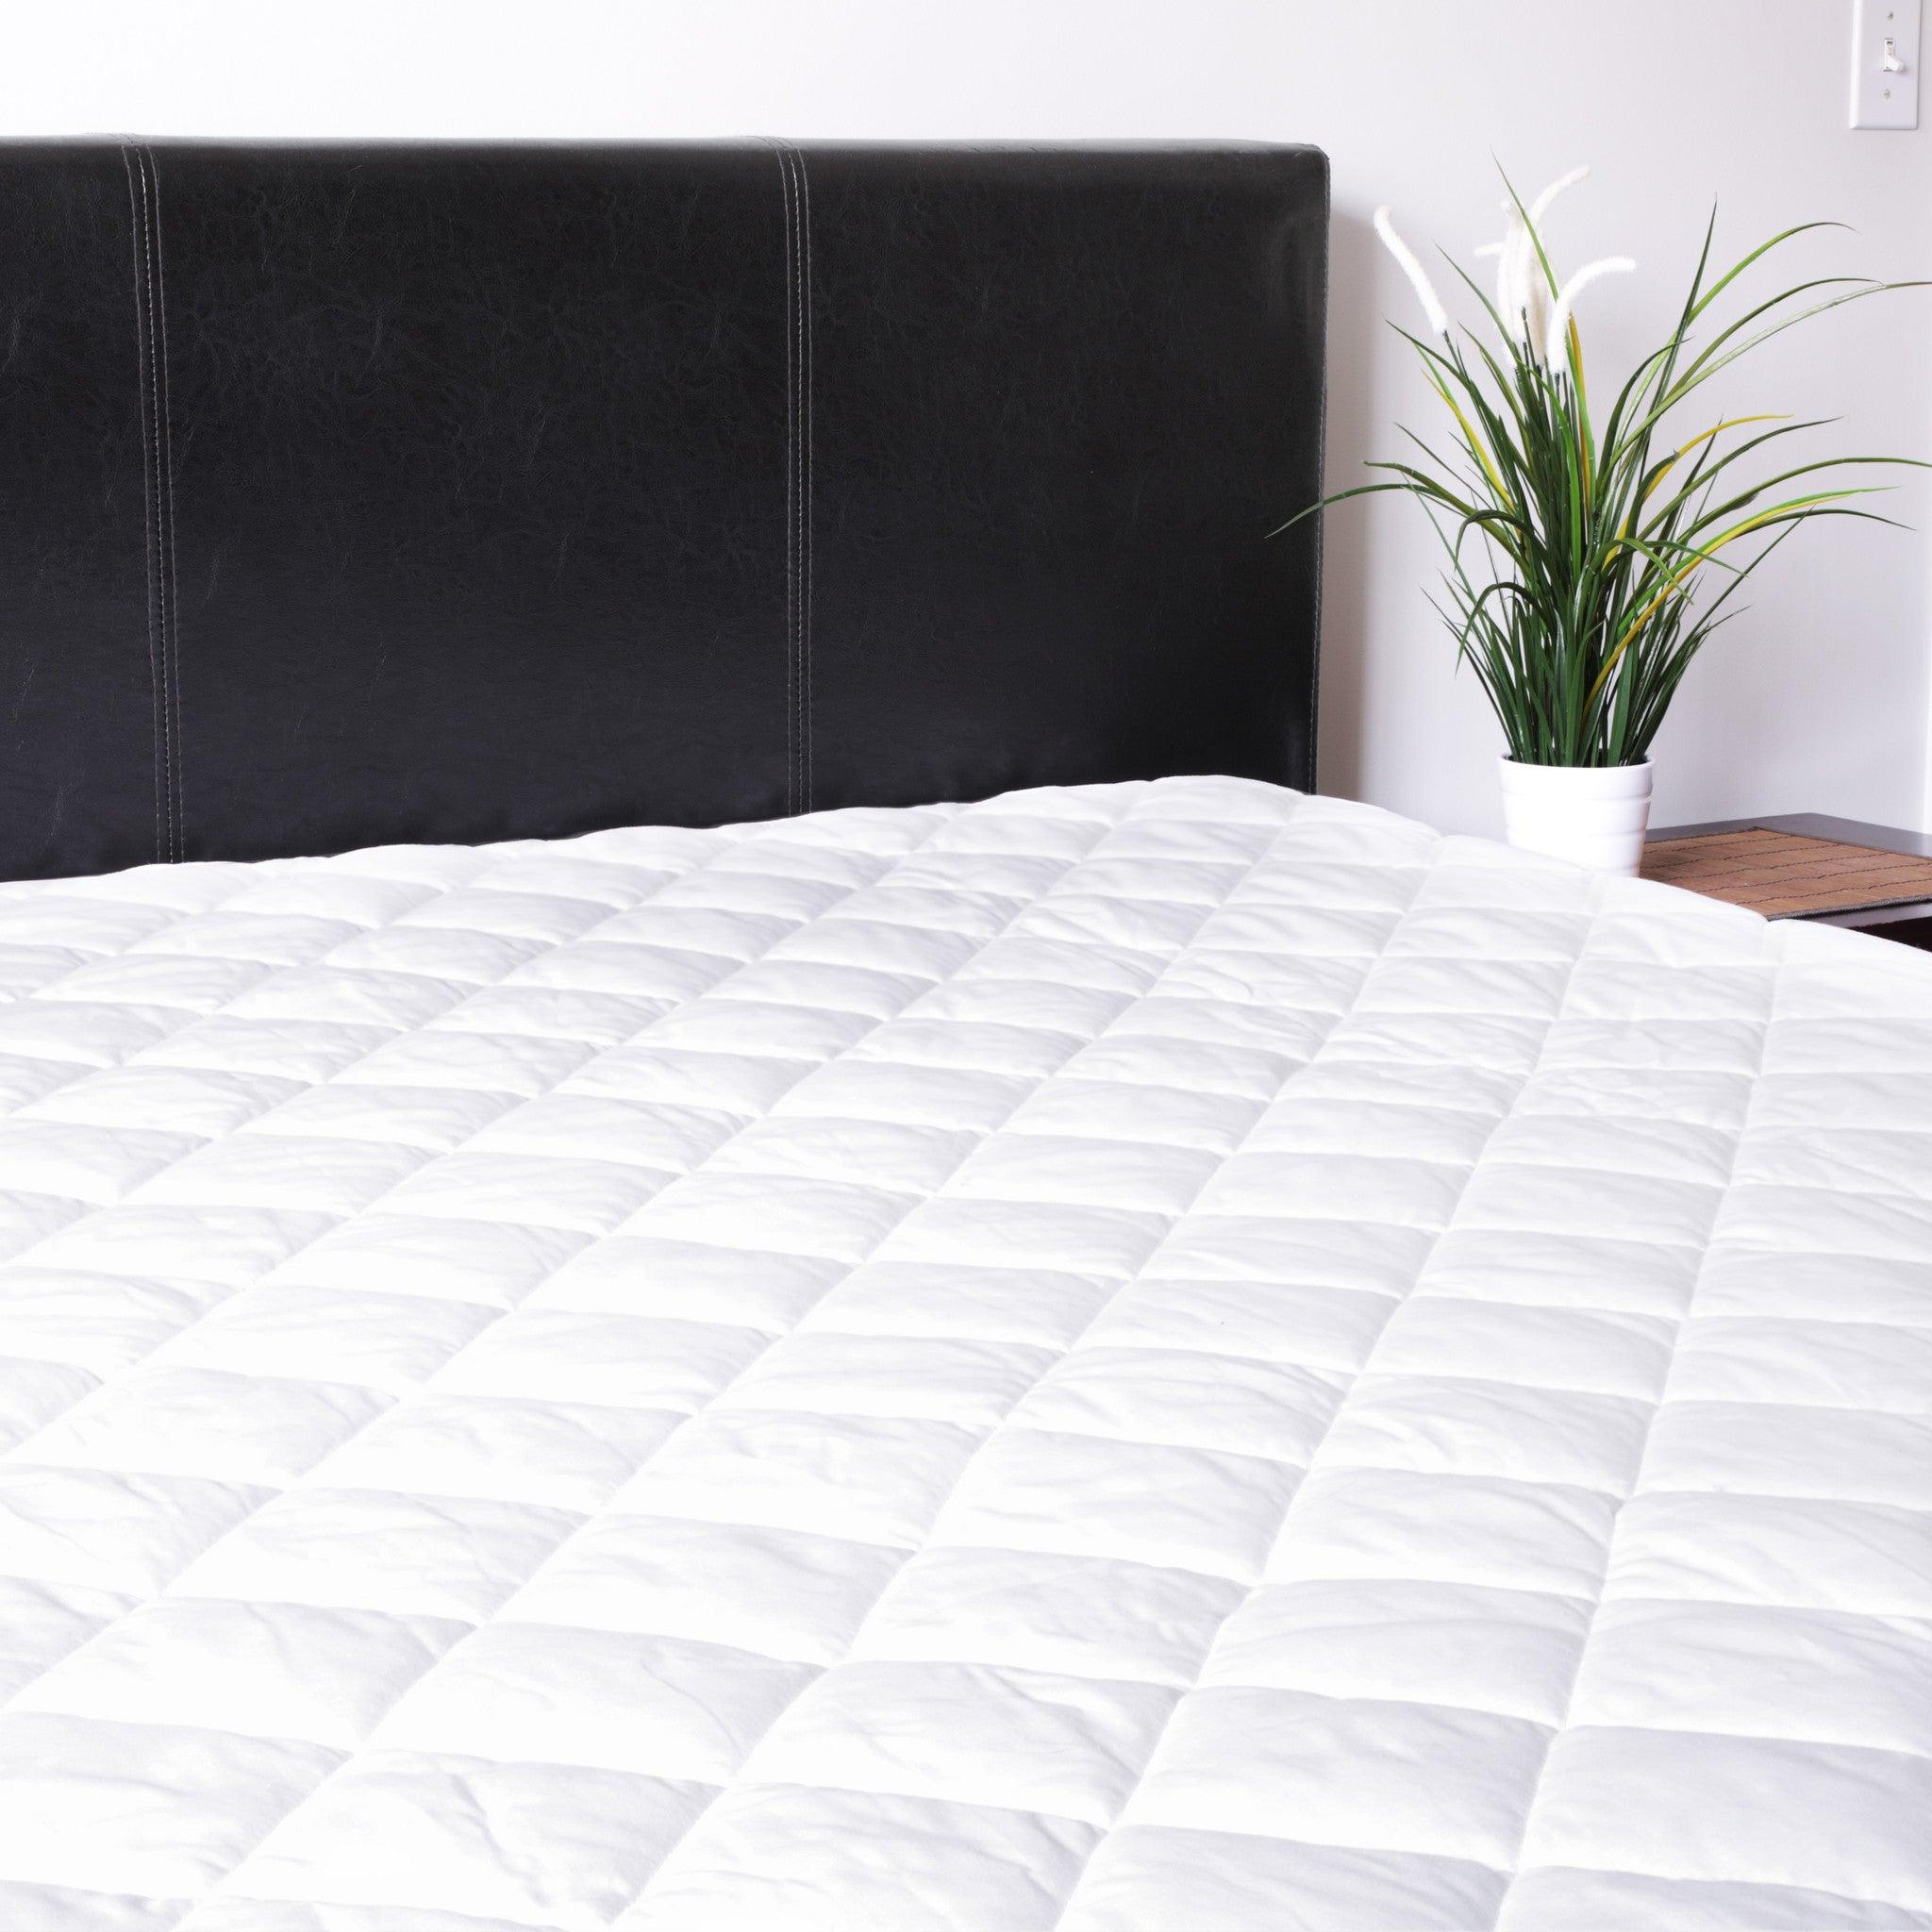 Mattress pillowtop - Revo Designs - 3